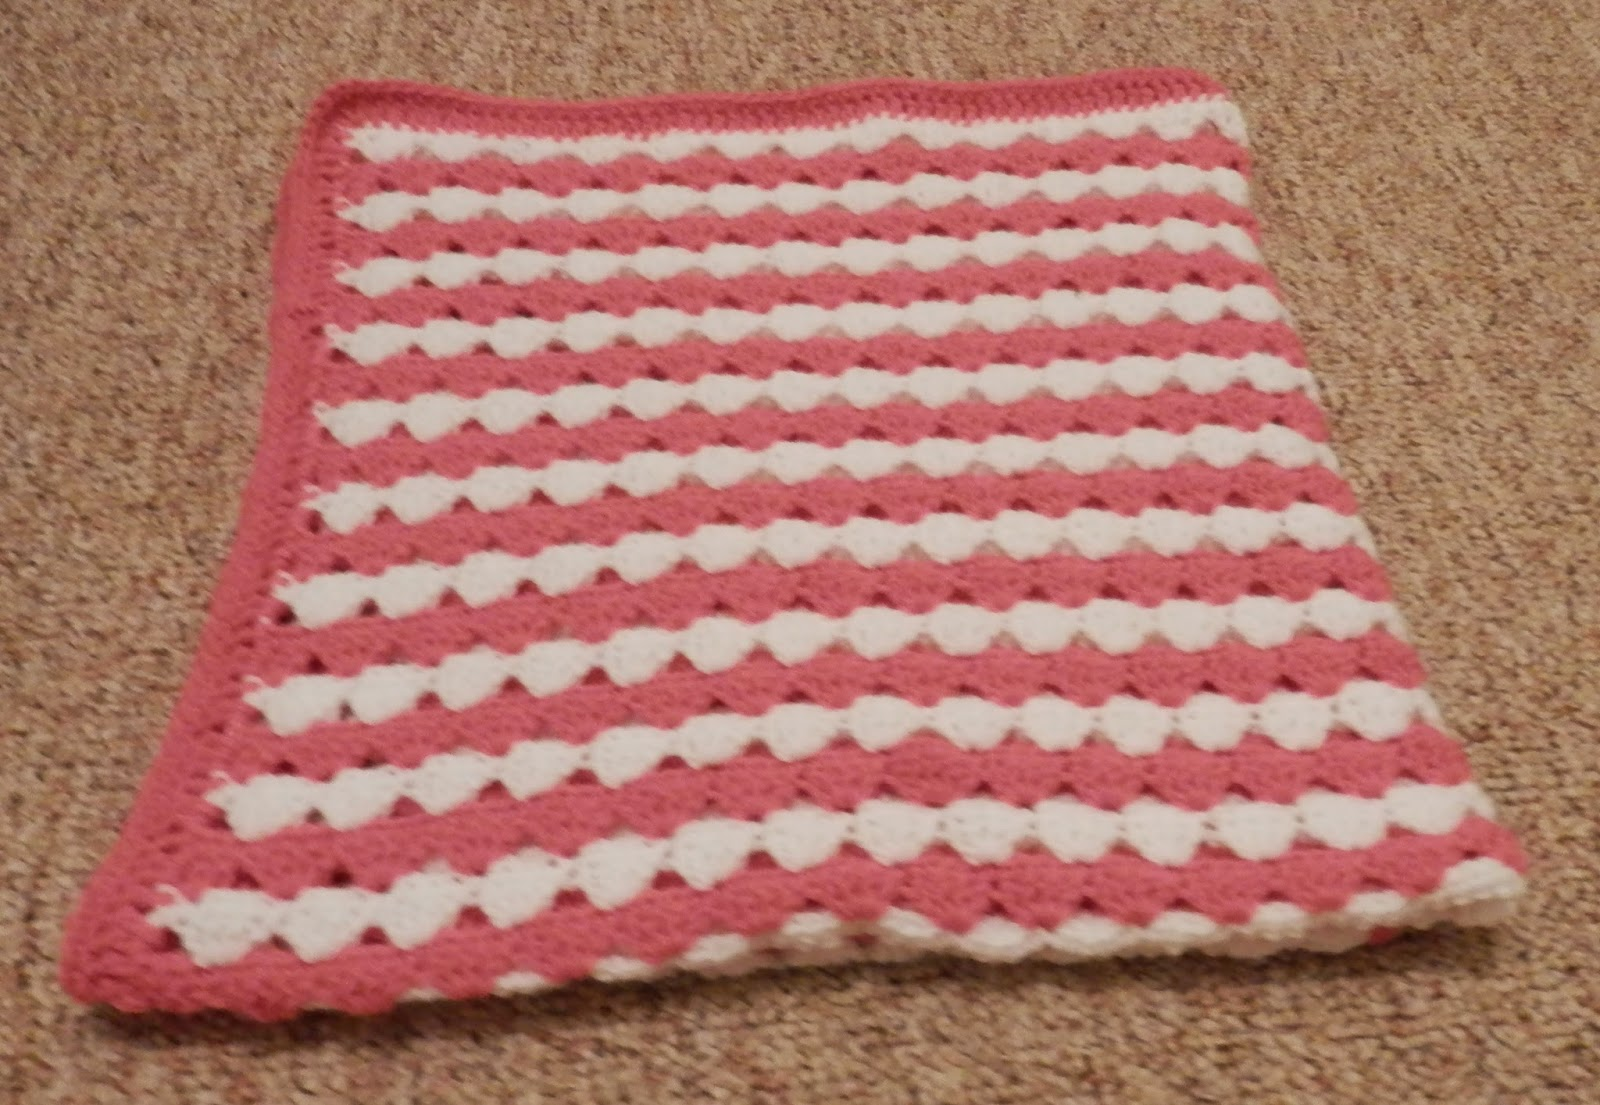 Karens Crocheted Garden of Colors: Bubble Gum Pink and White Baby ...